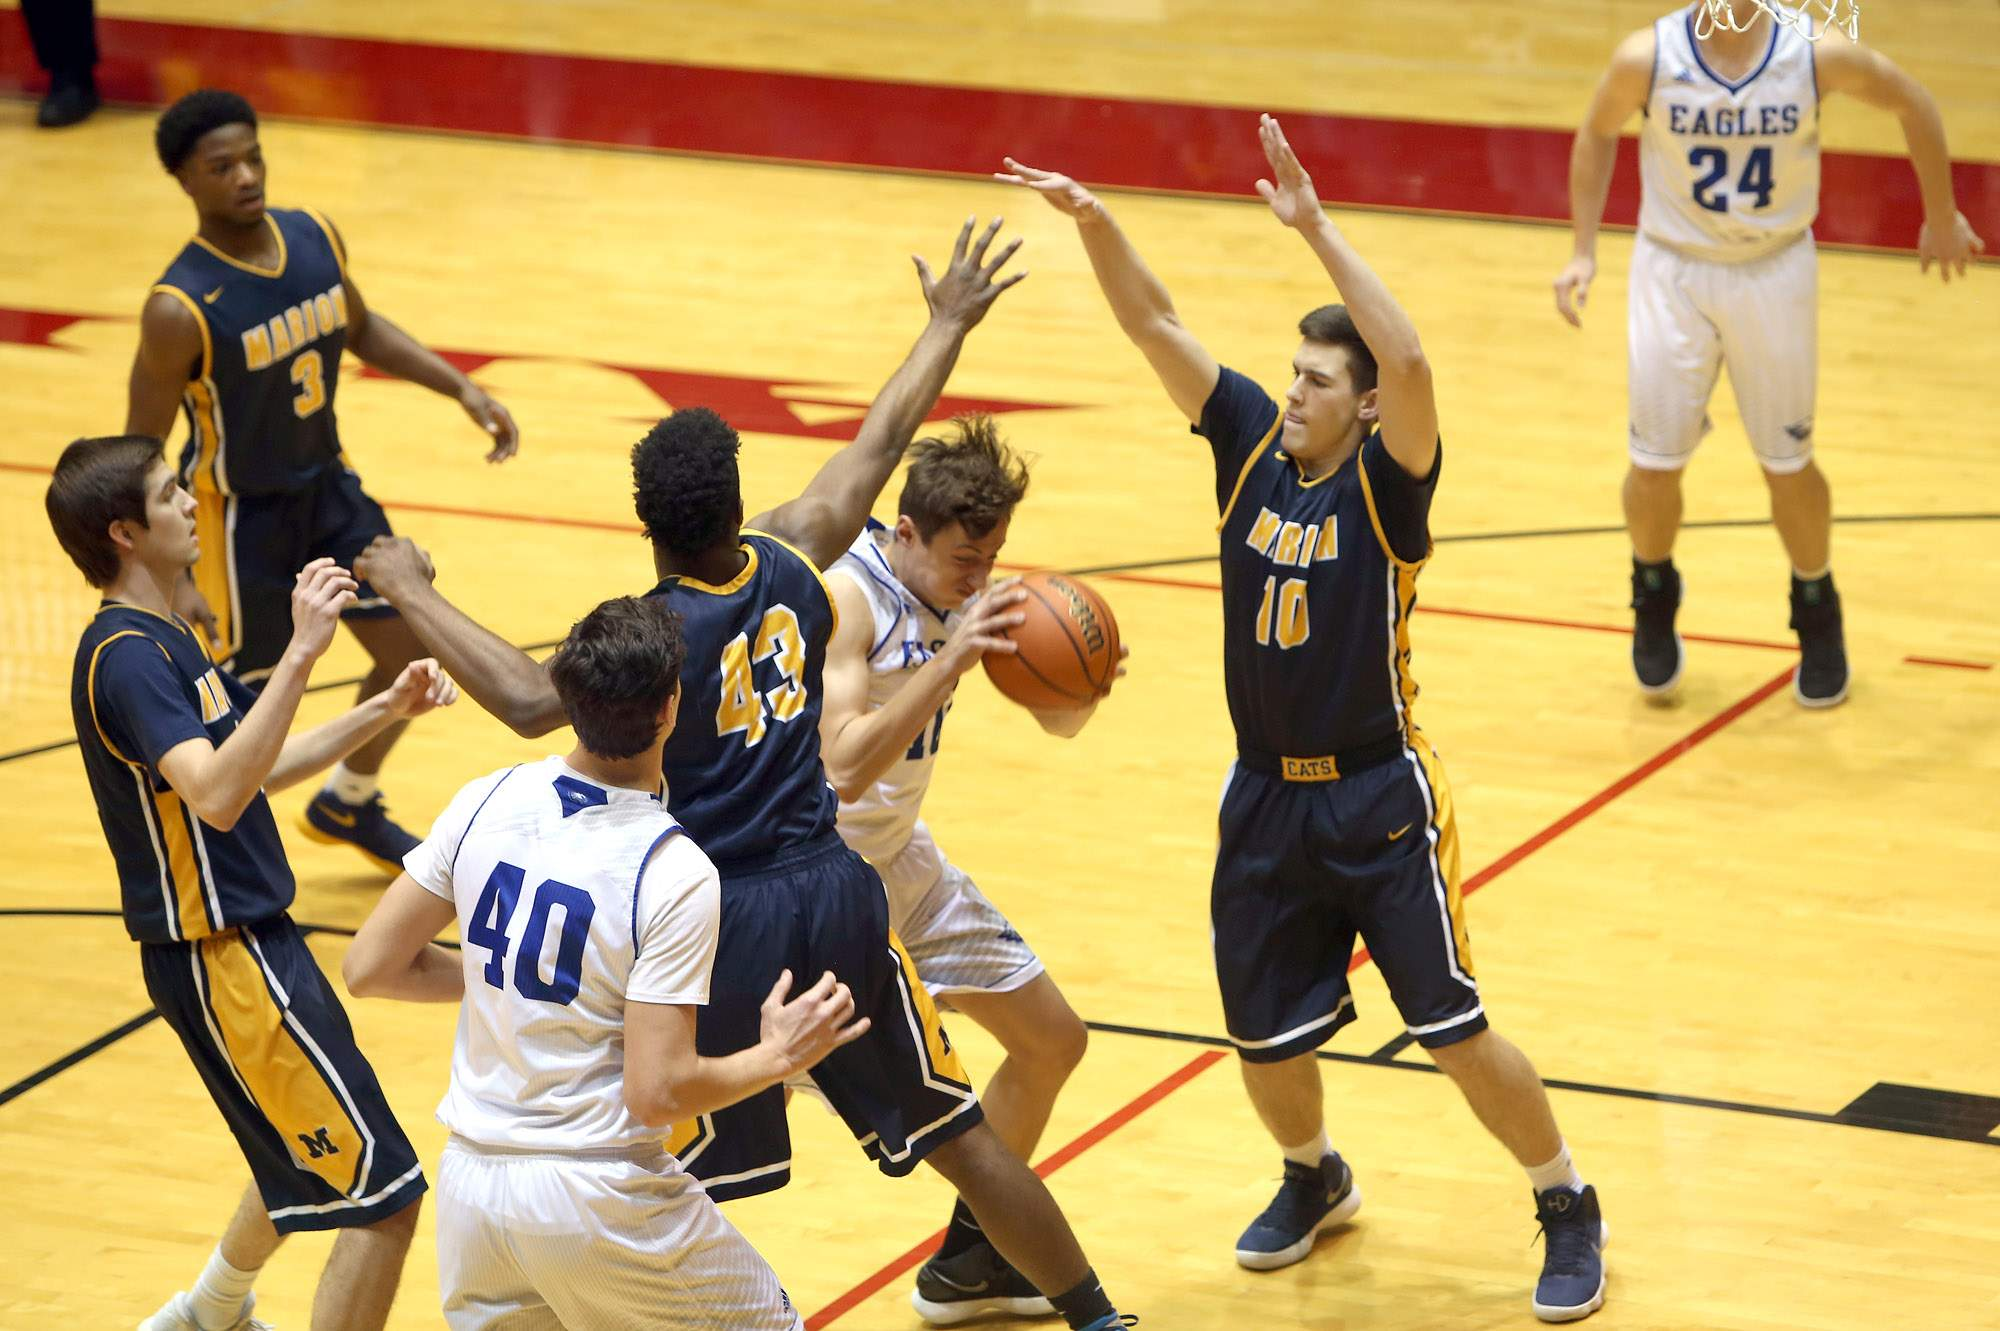 Marion's defense put the clamps on Columbia in Tuesday's semifinal game at the Centralia Sectional.